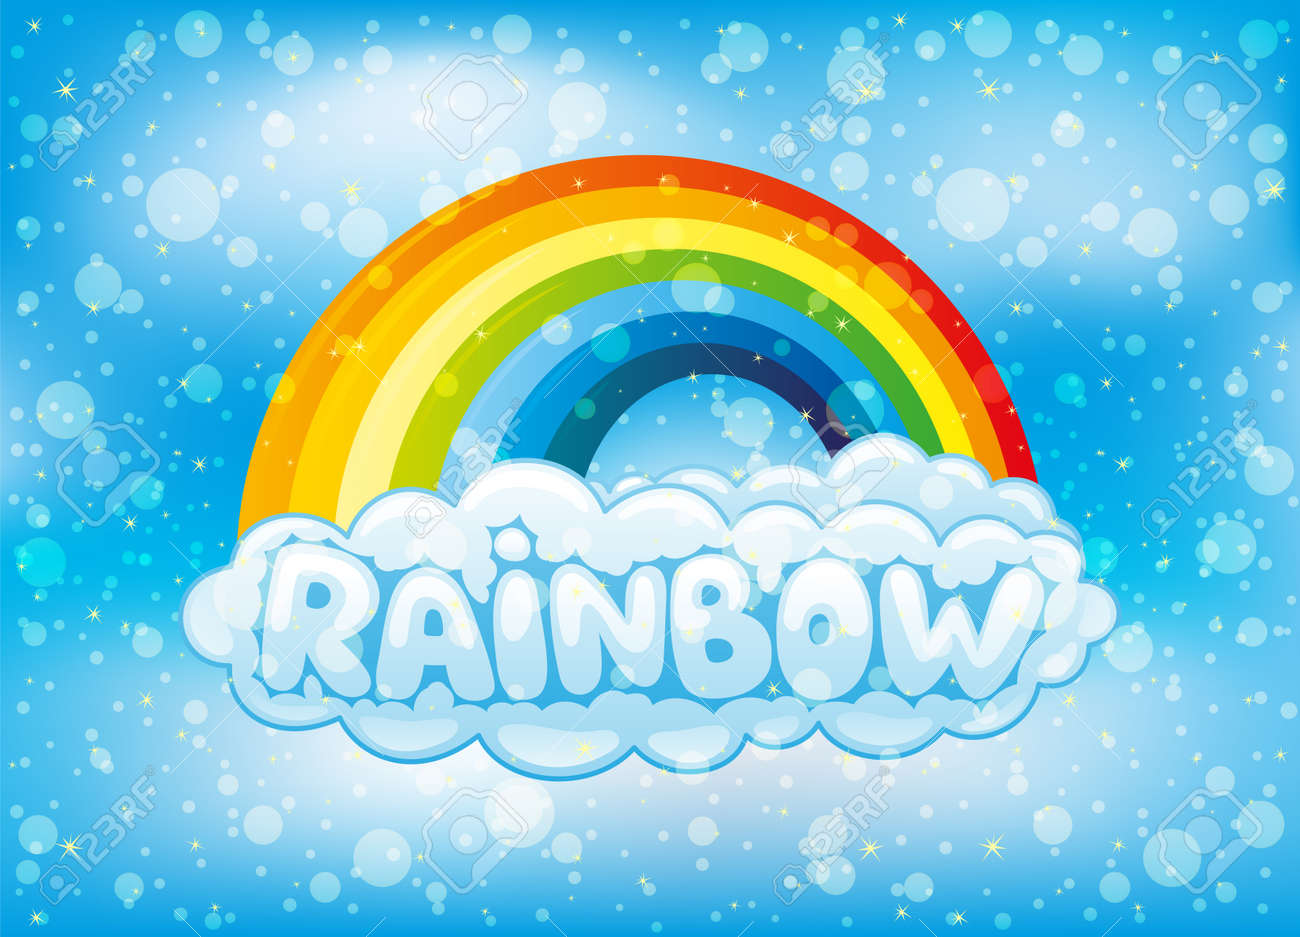 Illustration of a bright rainbow and clouds in the blue sky. - 168969190